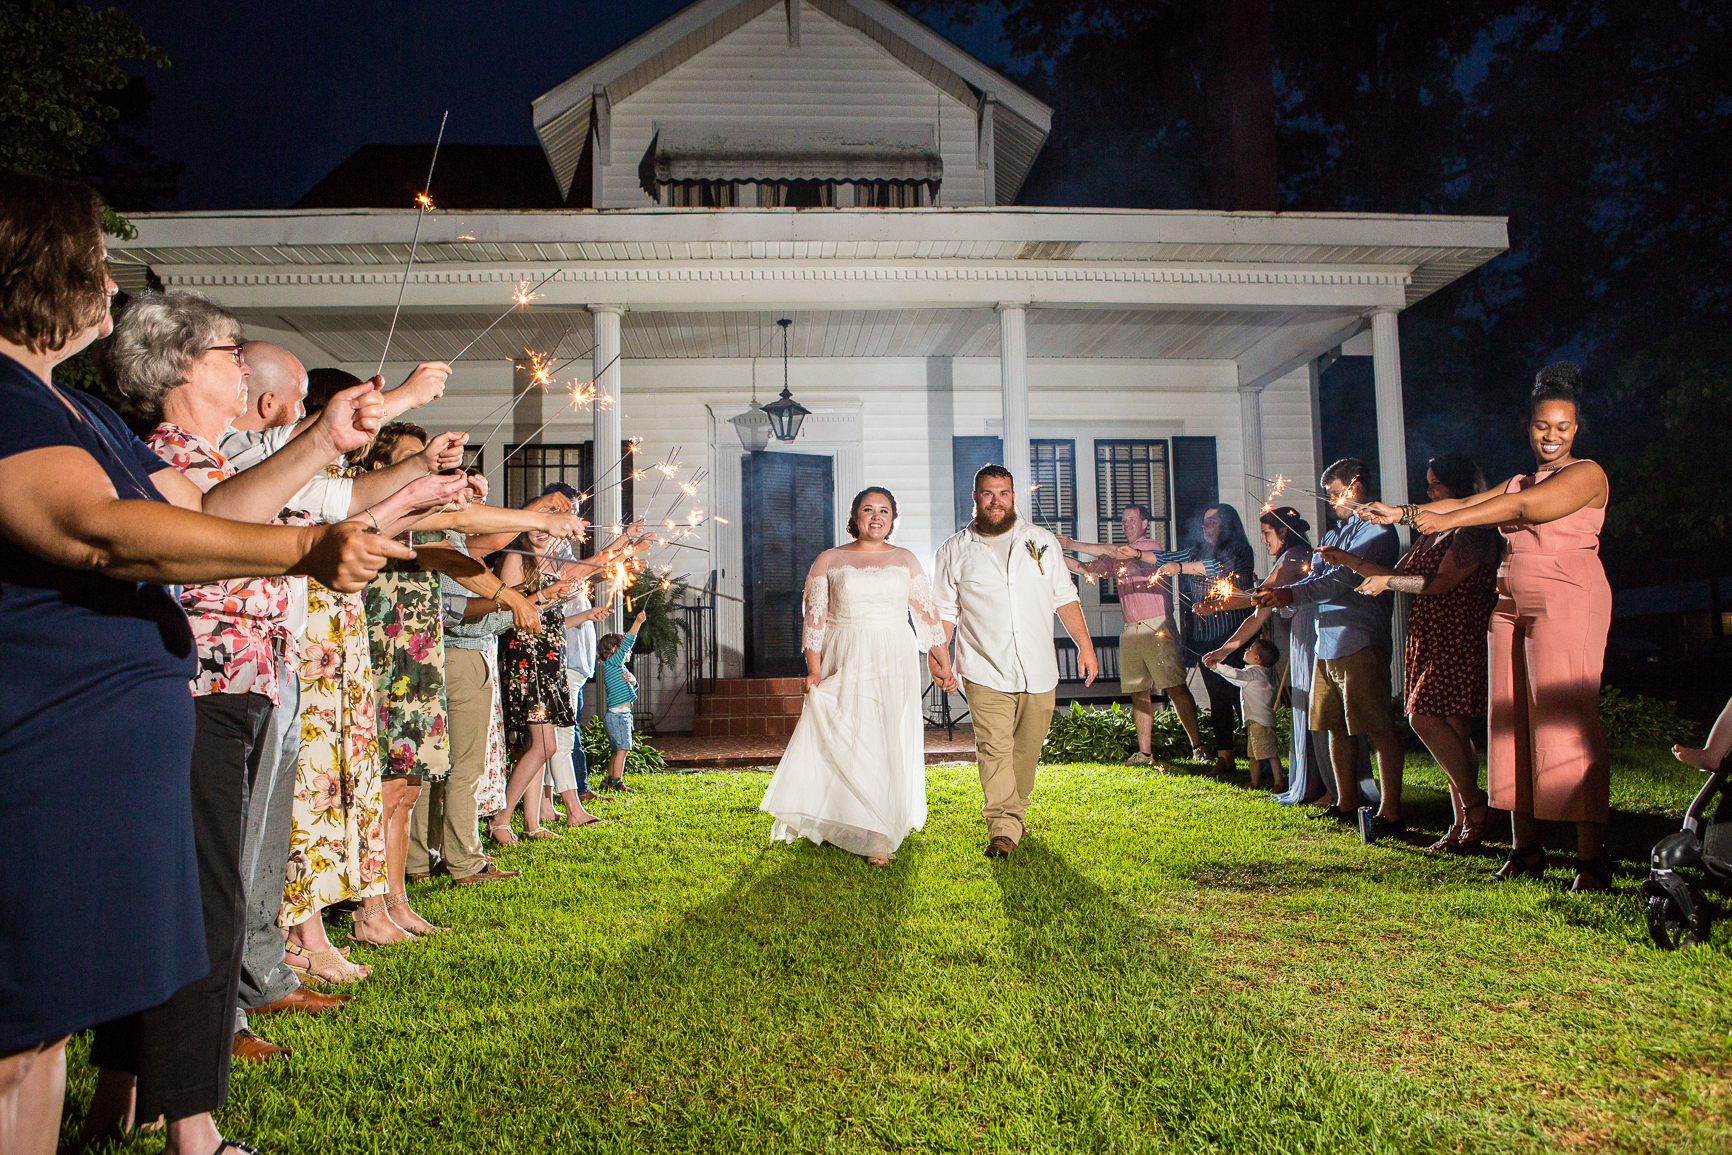 101 studio llc -Raleigh bride and groom wedding exit 9.jpg